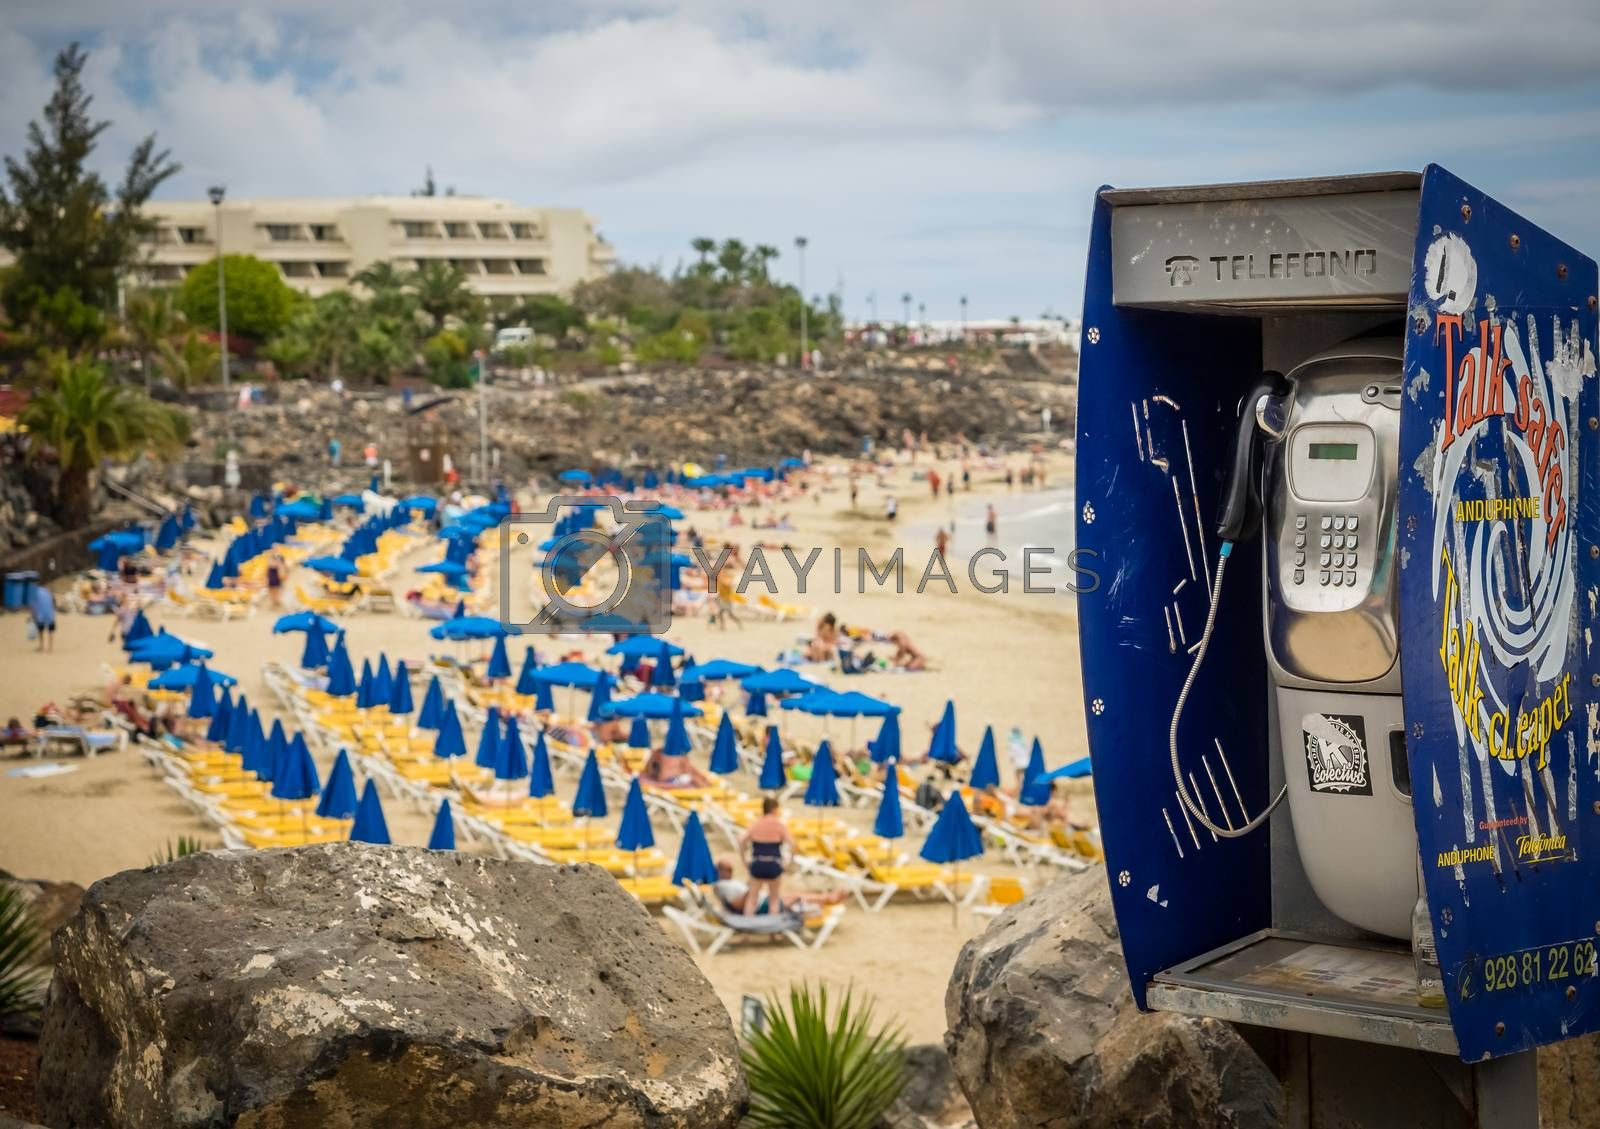 Public phone on the promenade above the puclic beach in Playa Blanca in Lanzarote, Canary Islands, Spain. Picture taken 18 April 2016